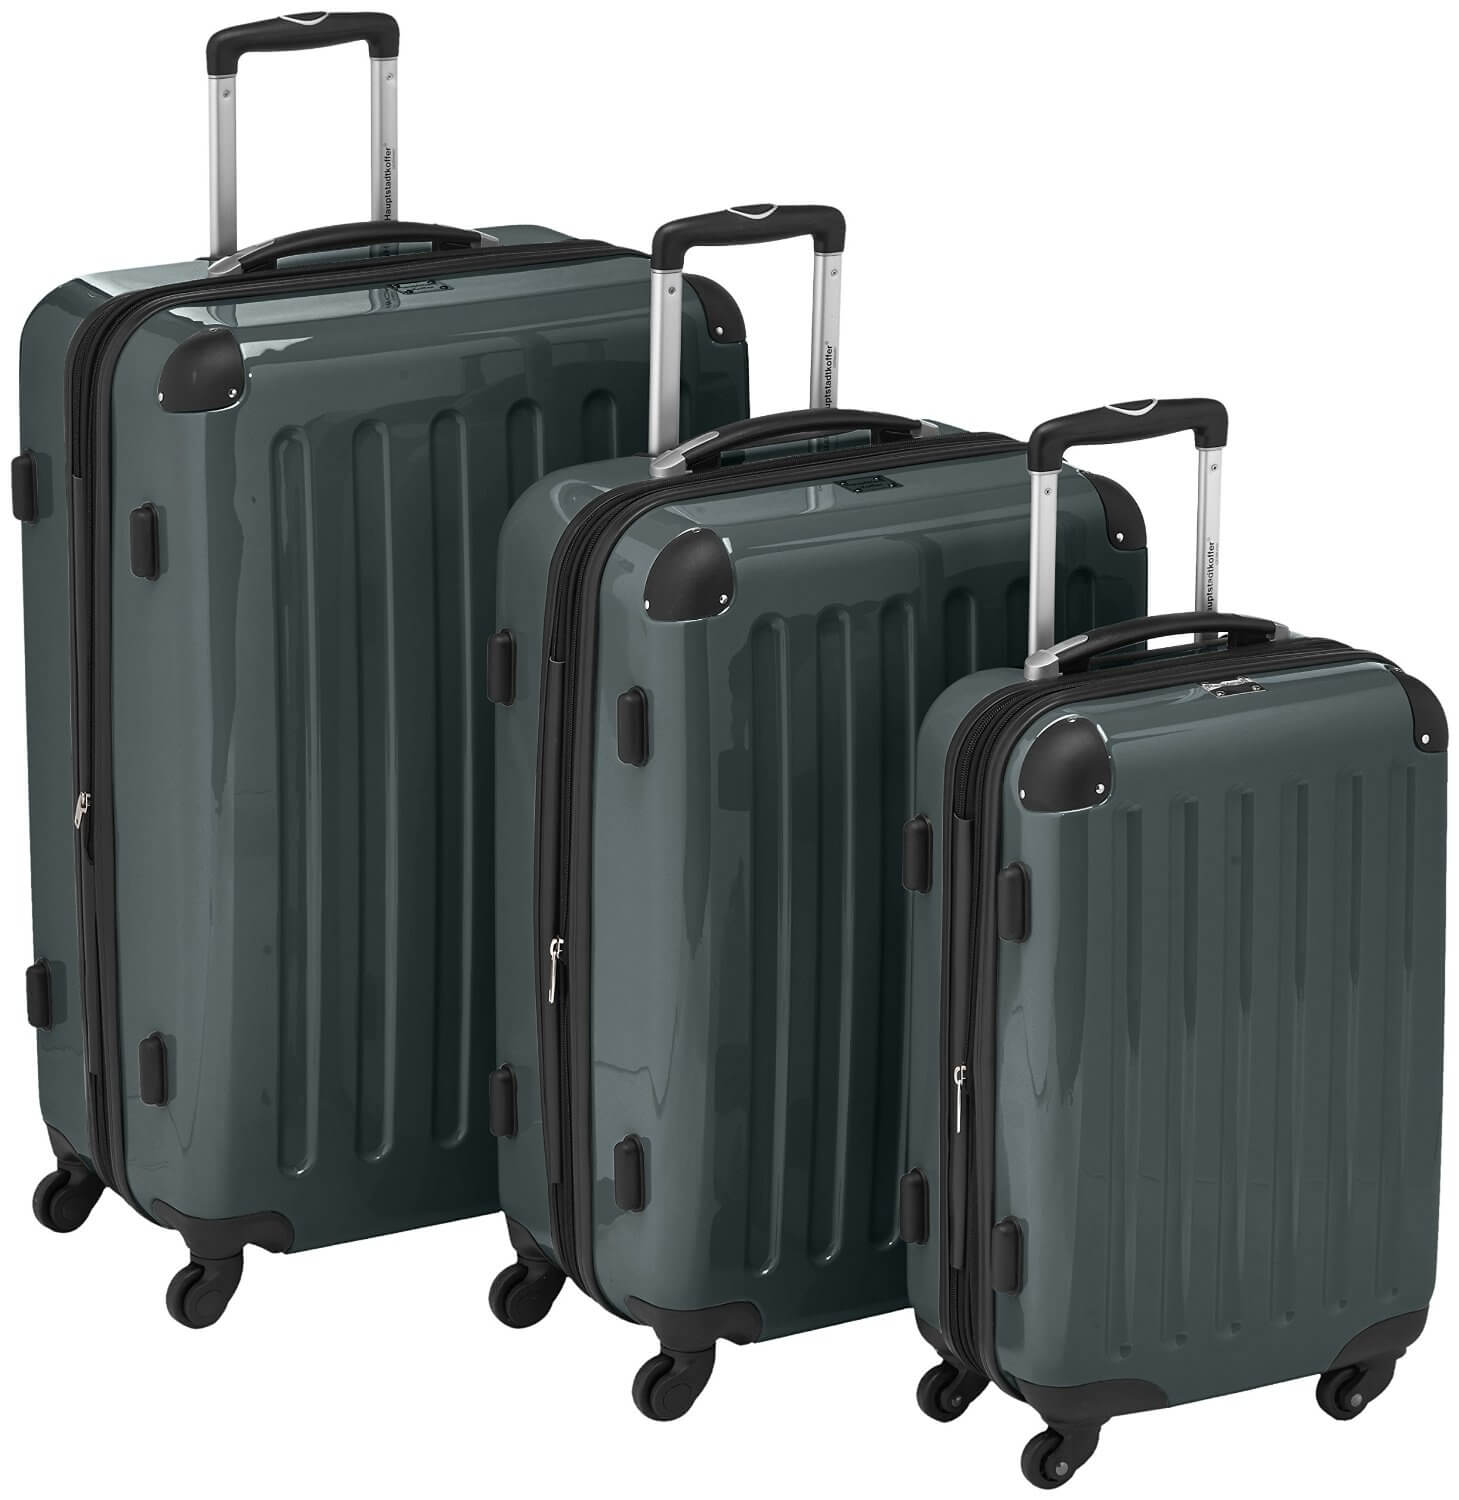 Large Lightweight Suitcase 4 Wheels - The Best Of UK 2016 - 2017